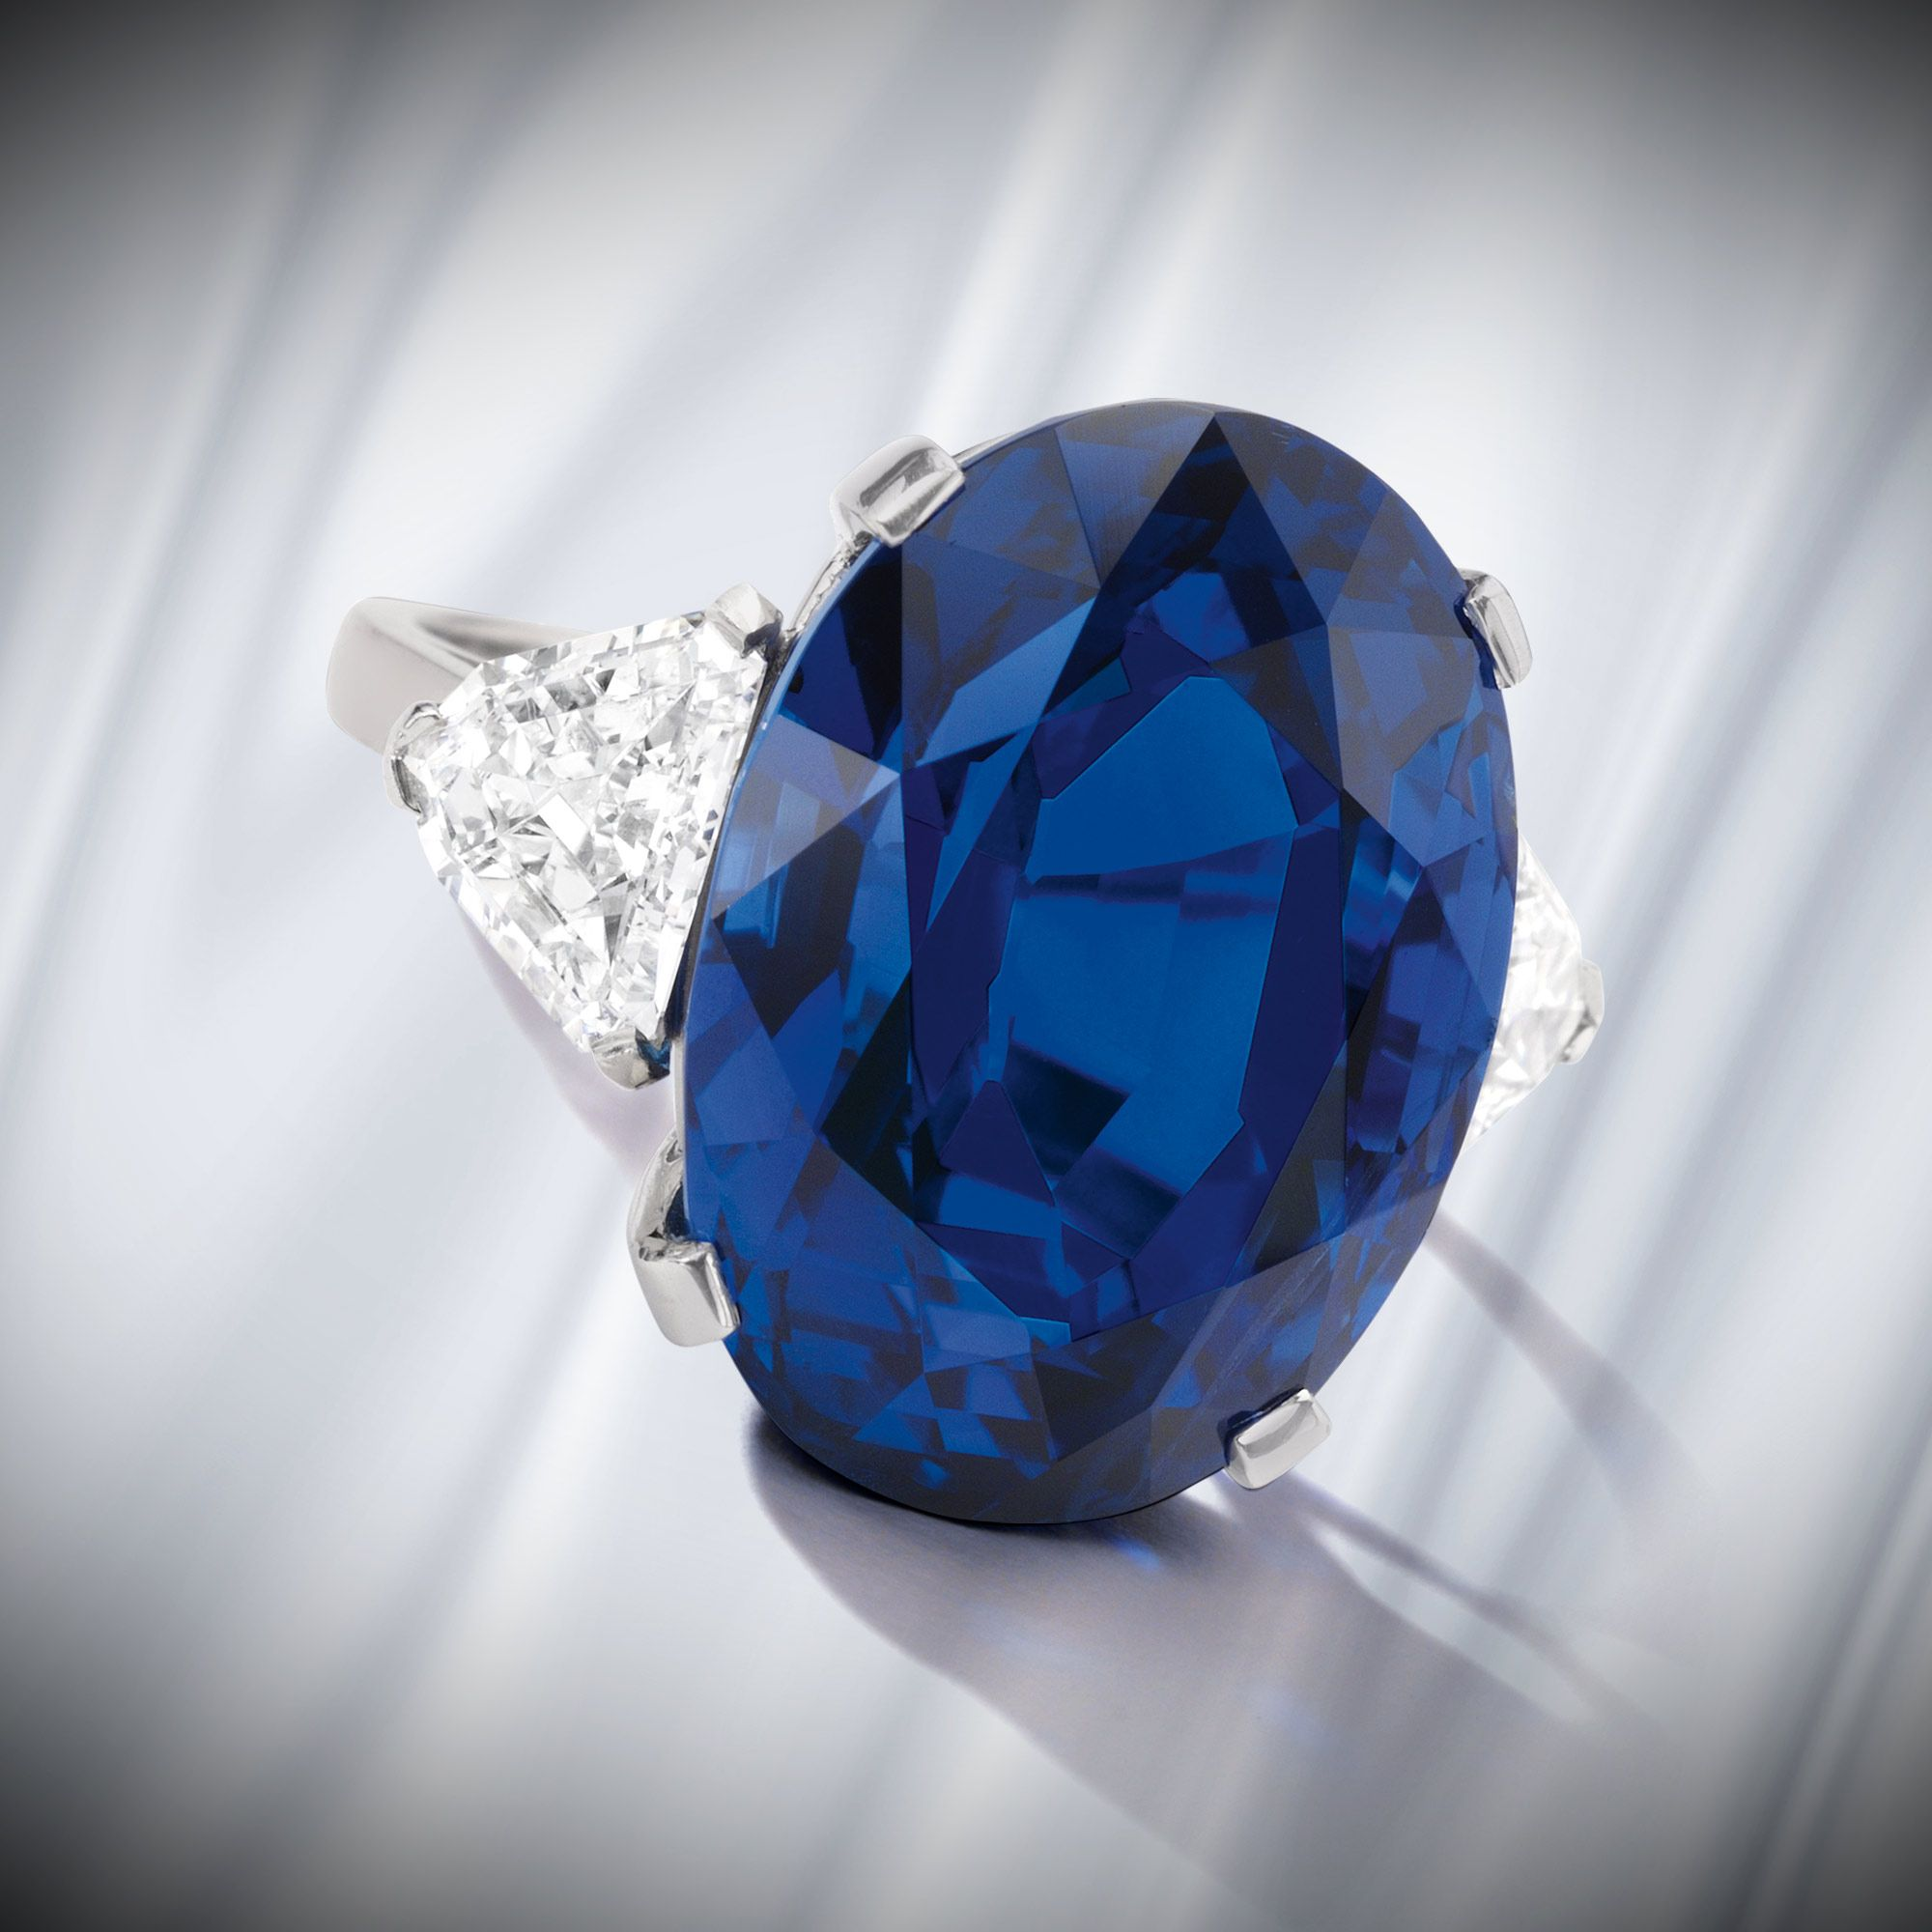 chf pin carat ring stone sapphire kashmir cushion estimate cut